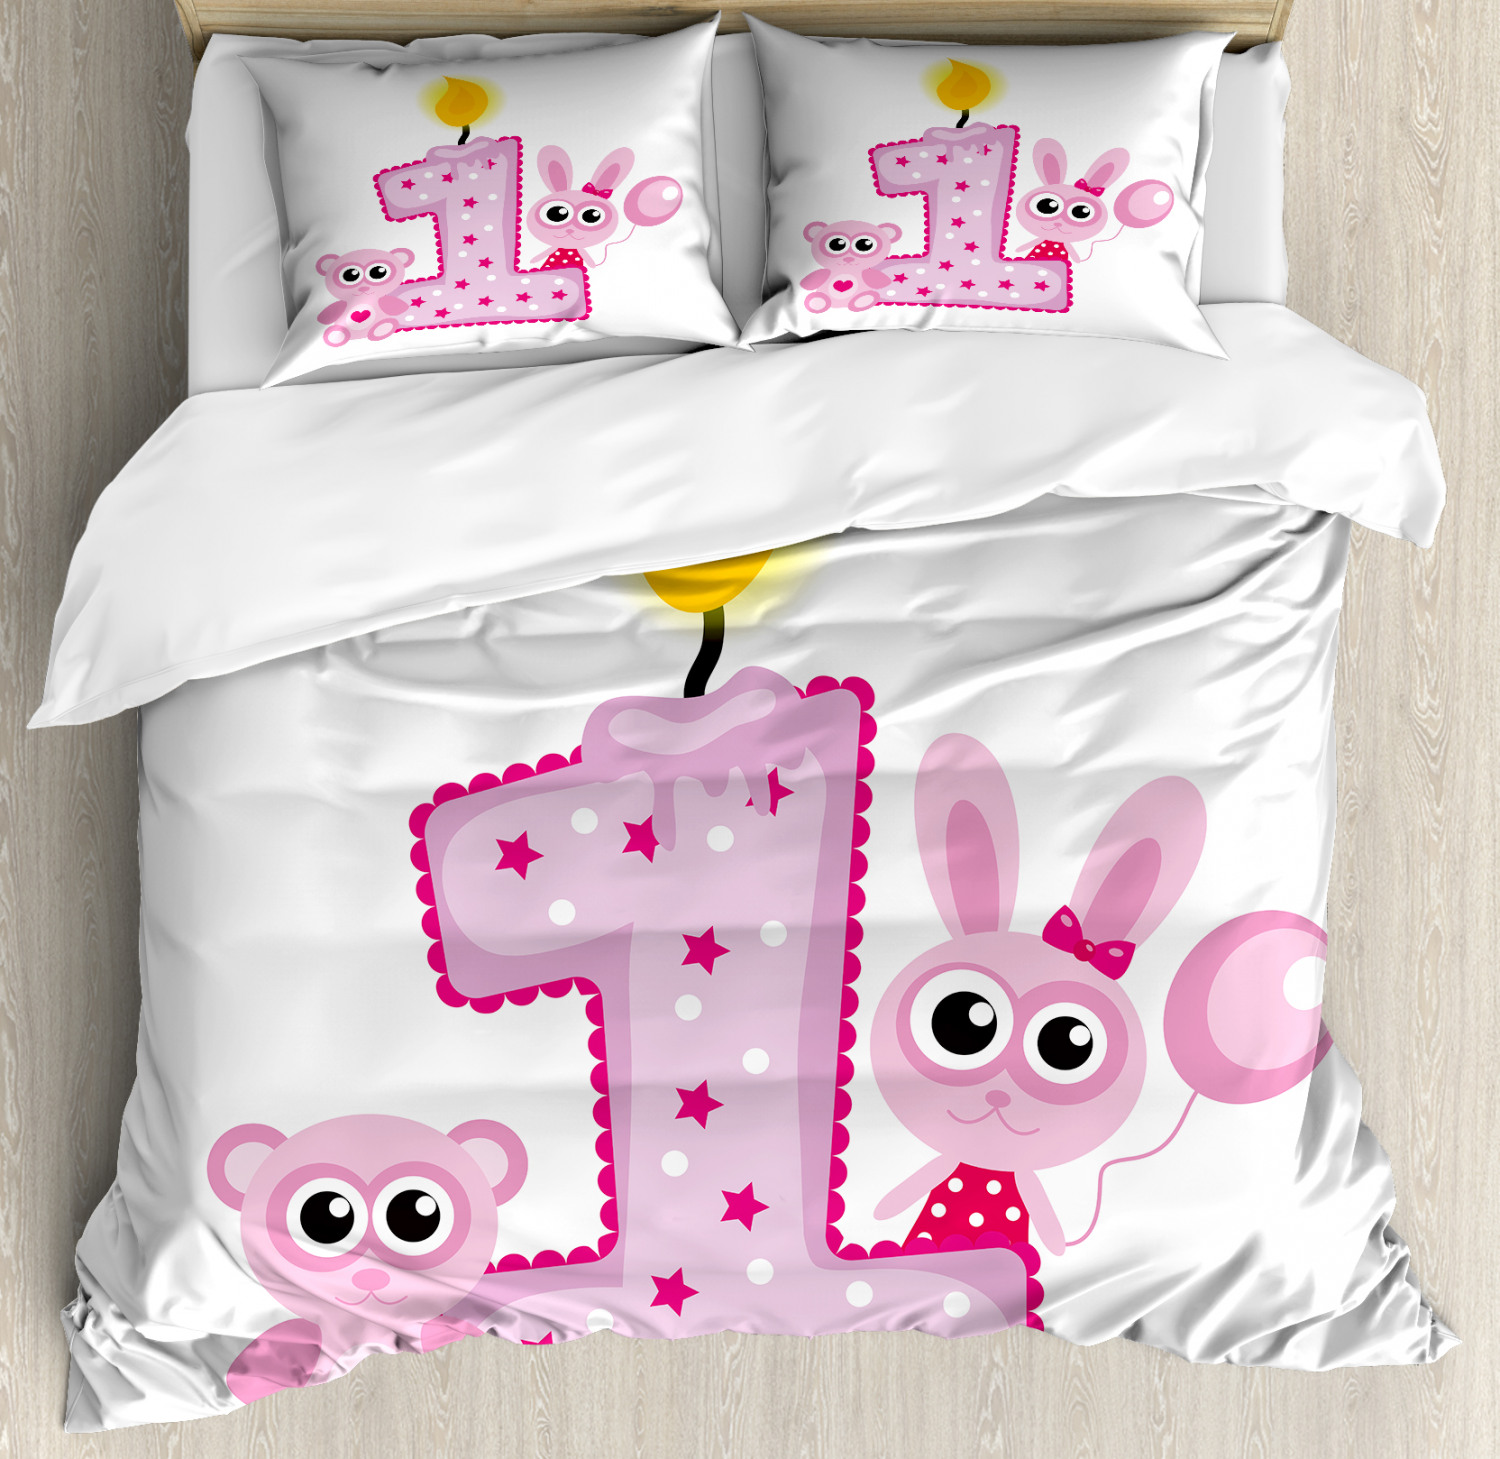 Party Duvet Cover Set with Pillow Shams Girls Birthday Bunnies Print